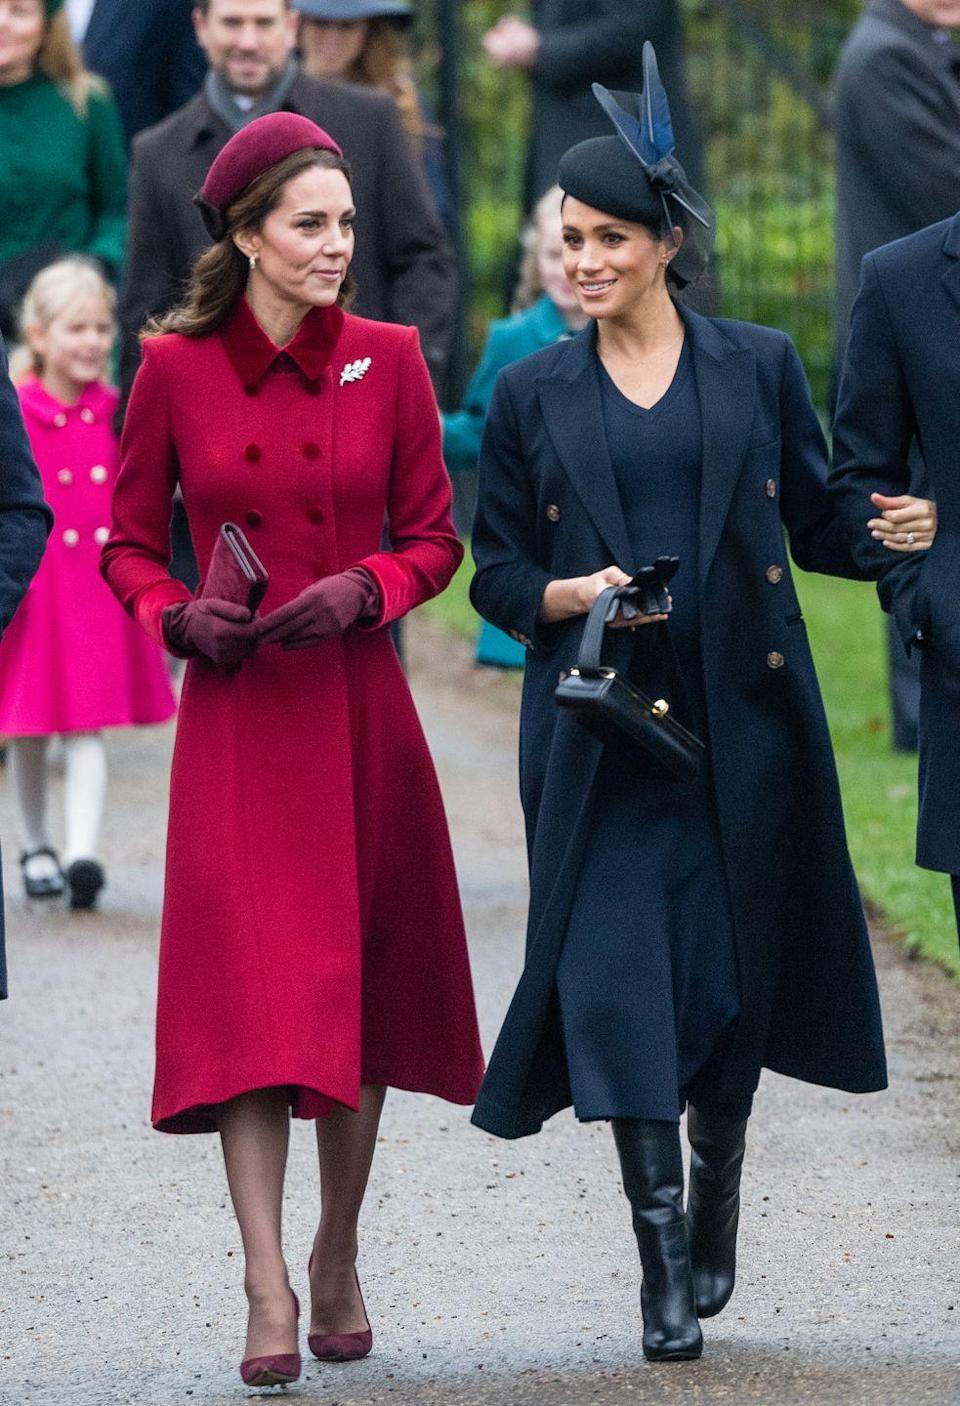 """<p>Talk about controversial. You can see a full timeline of rumors about the sister-in-laws' relationship <a href=""""https://www.elle.com/culture/celebrities/a25350670/kate-middleton-meghan-markle-feud-timeline/"""" rel=""""nofollow noopener"""" target=""""_blank"""" data-ylk=""""slk:here"""" class=""""link rapid-noclick-resp"""">here</a>, but remember that that's exactly what they are: rumors. Royal fans started labeling themselves """"Team Meghan"""" and """"Team Kate,"""" and were even convinced the royals were faking their relationship for moments like this (Christmas at Sandringham with the Queen).</p>"""